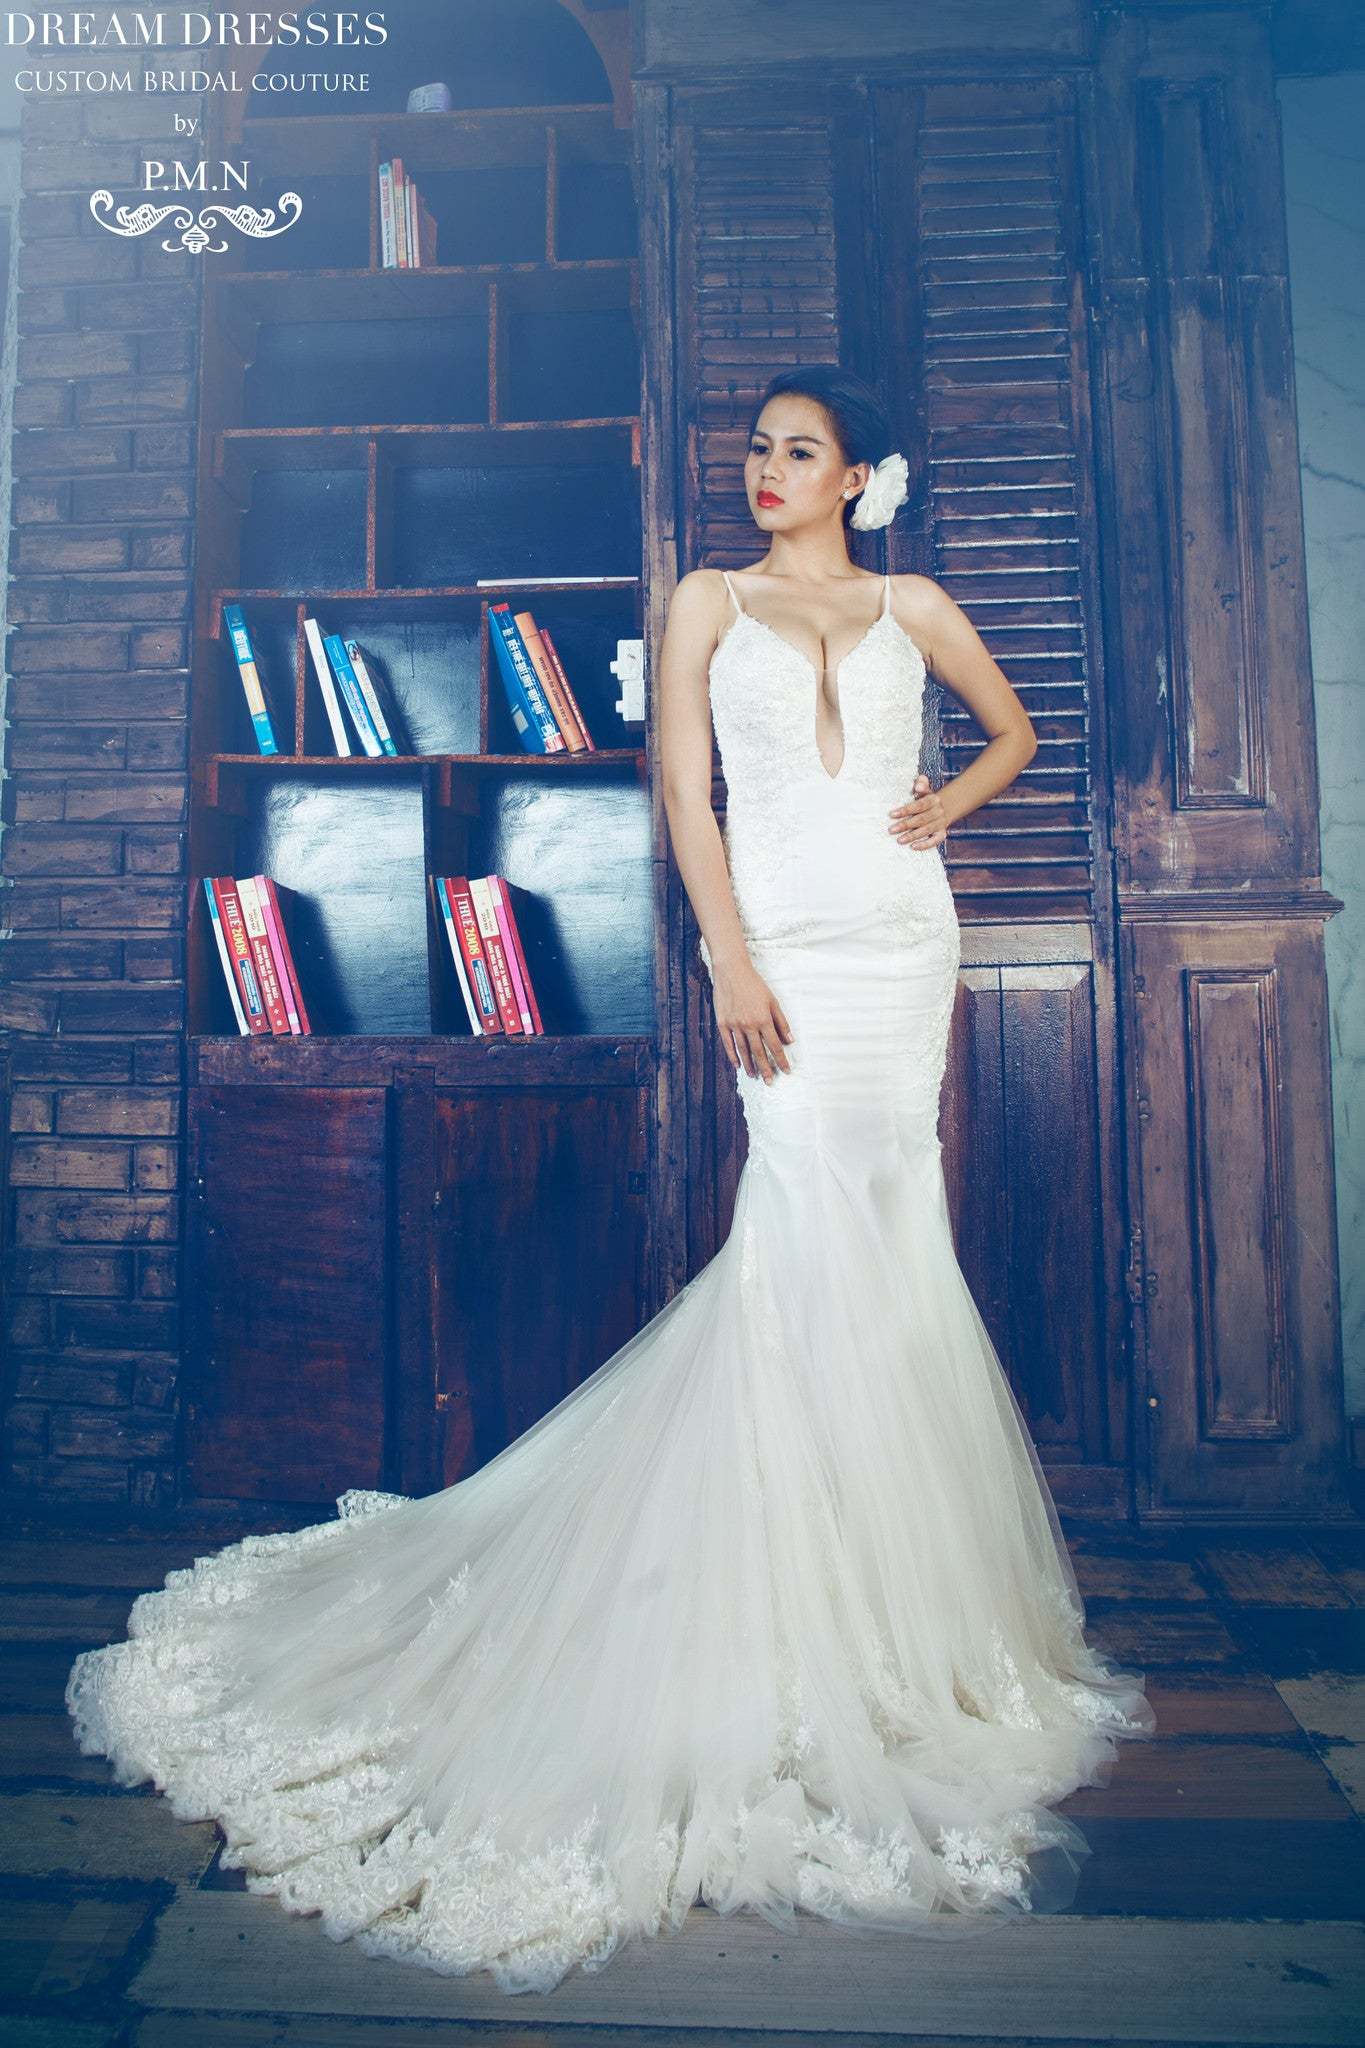 Spaghetti Strap Mermaid Wedding Dress With Sexy Back (Style # Katherine PB088) - Dream Dresses by P.M.N  - 1